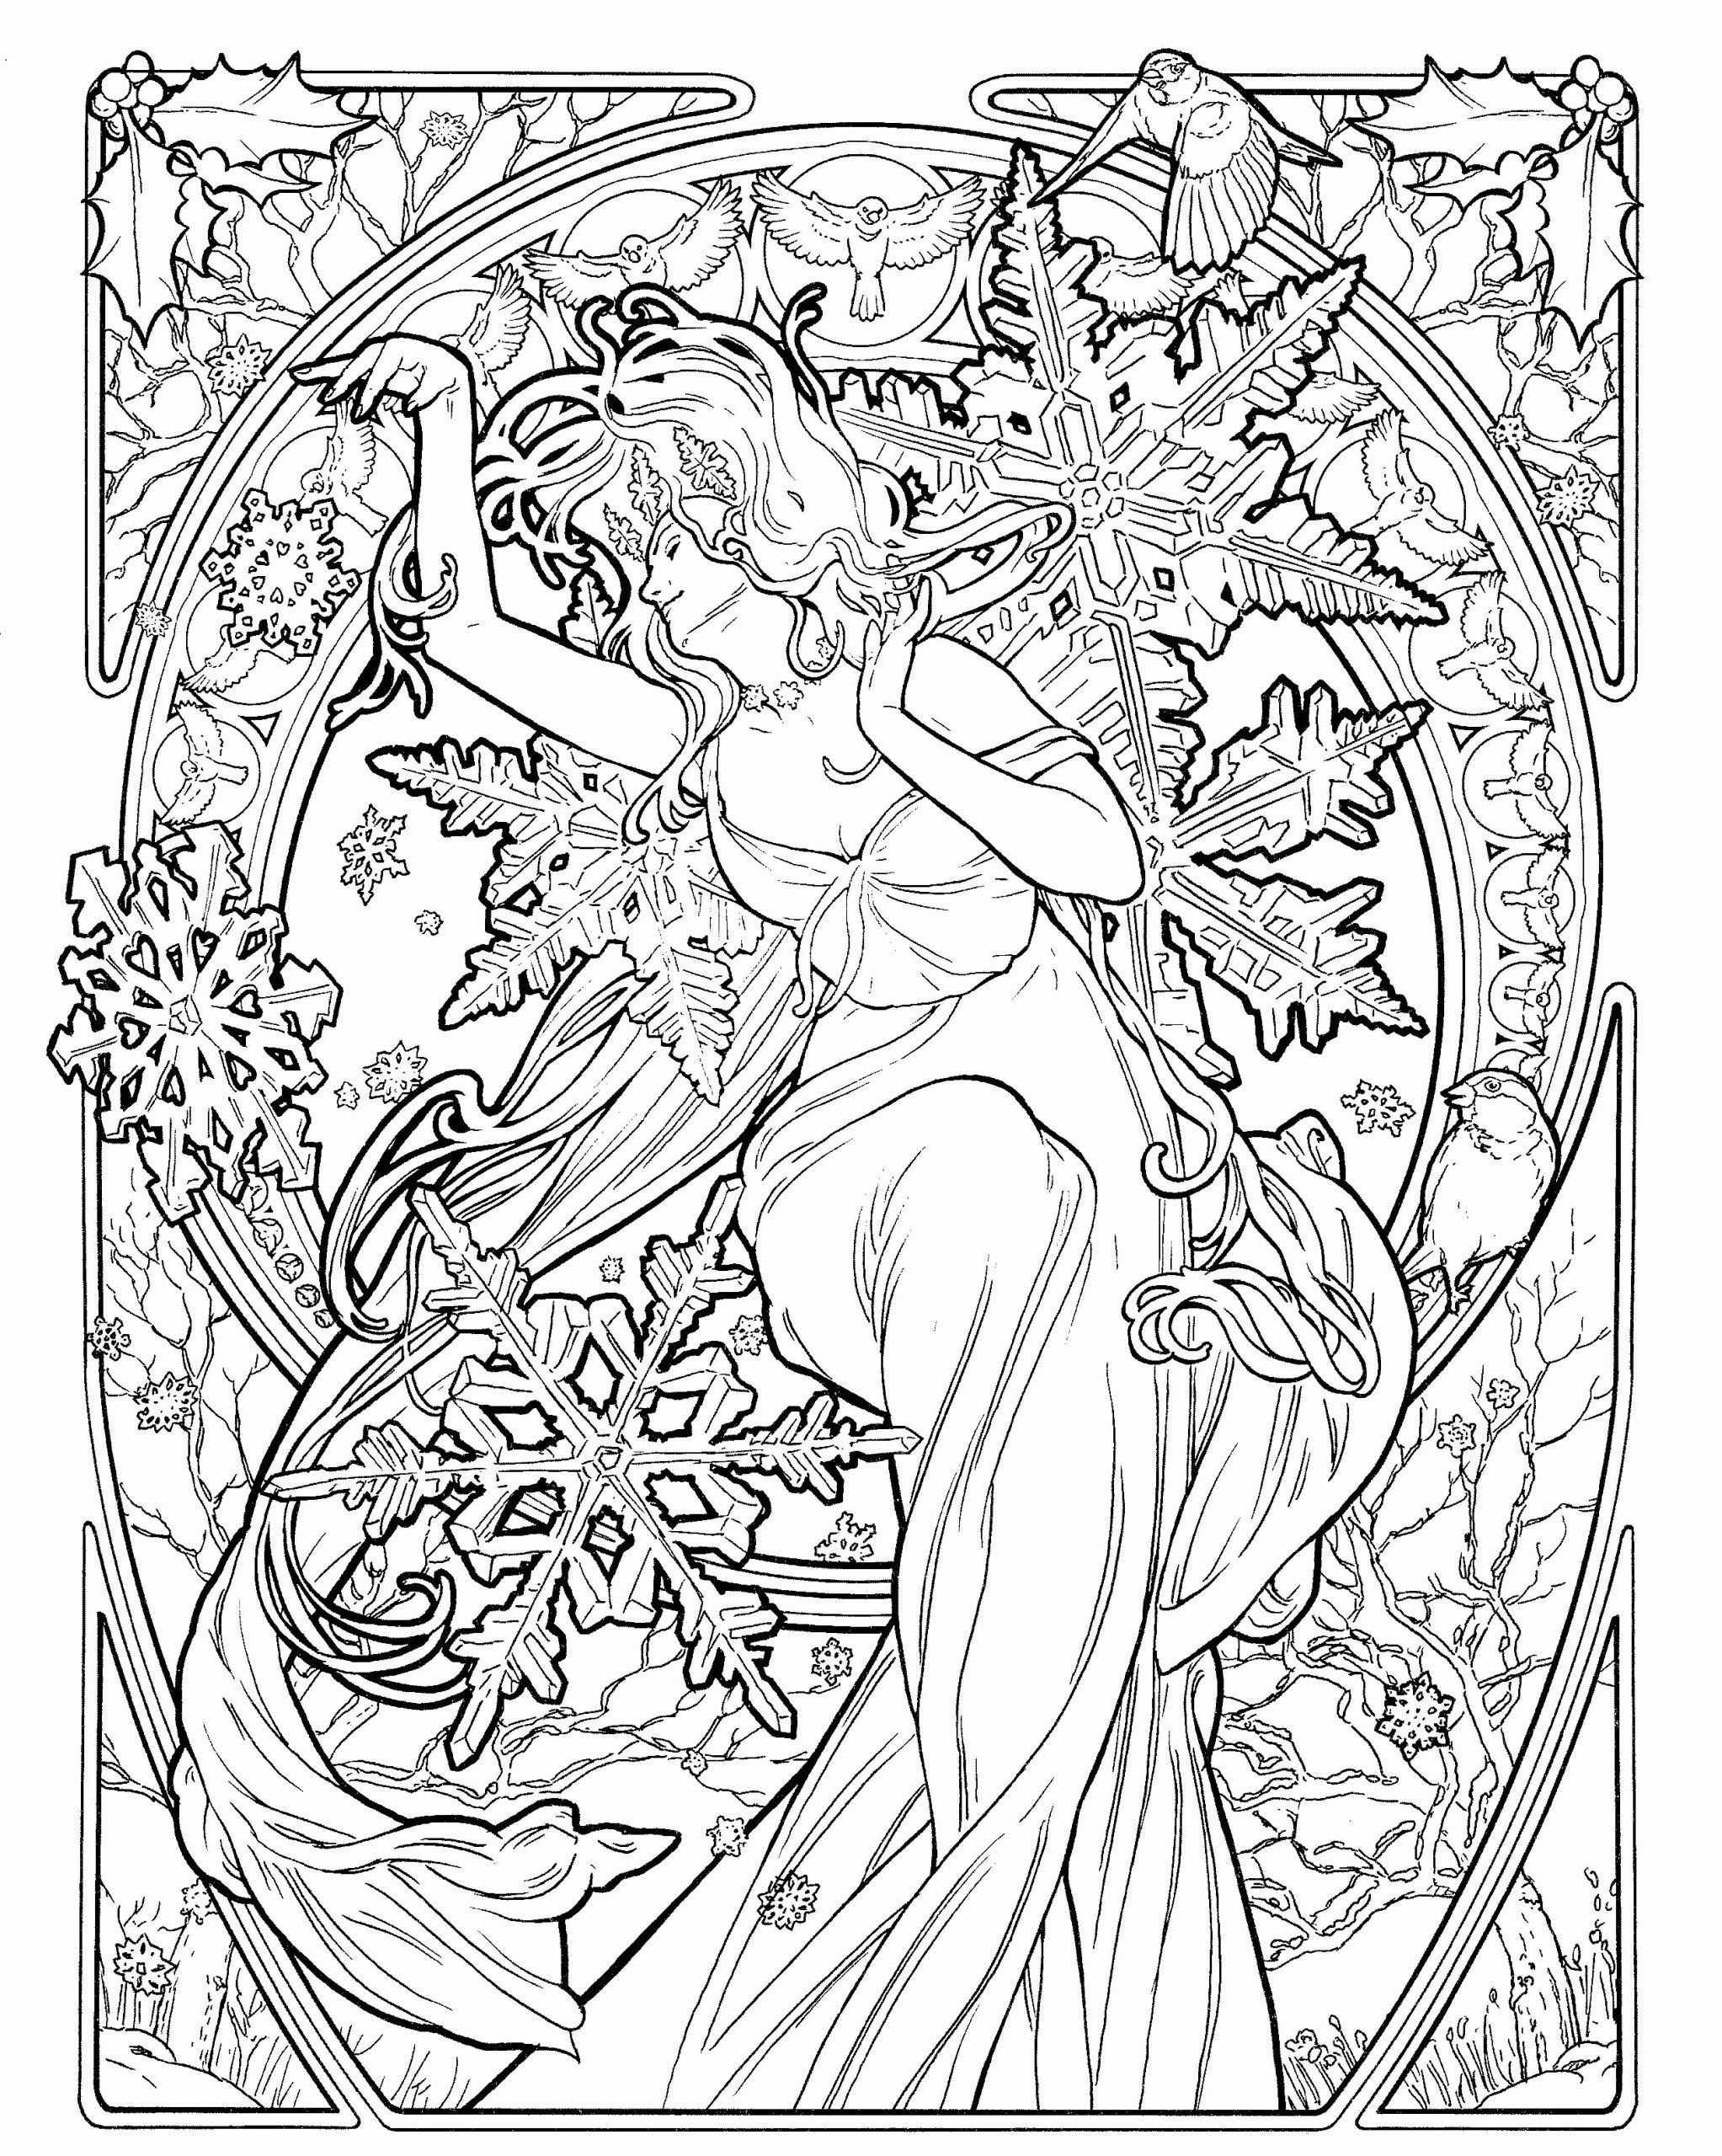 Art Coloring Pages For Adults New Pin By Brenda Mendenhall On Art I Like Fairy Coloring Abstract Coloring Pages Coloring Pages